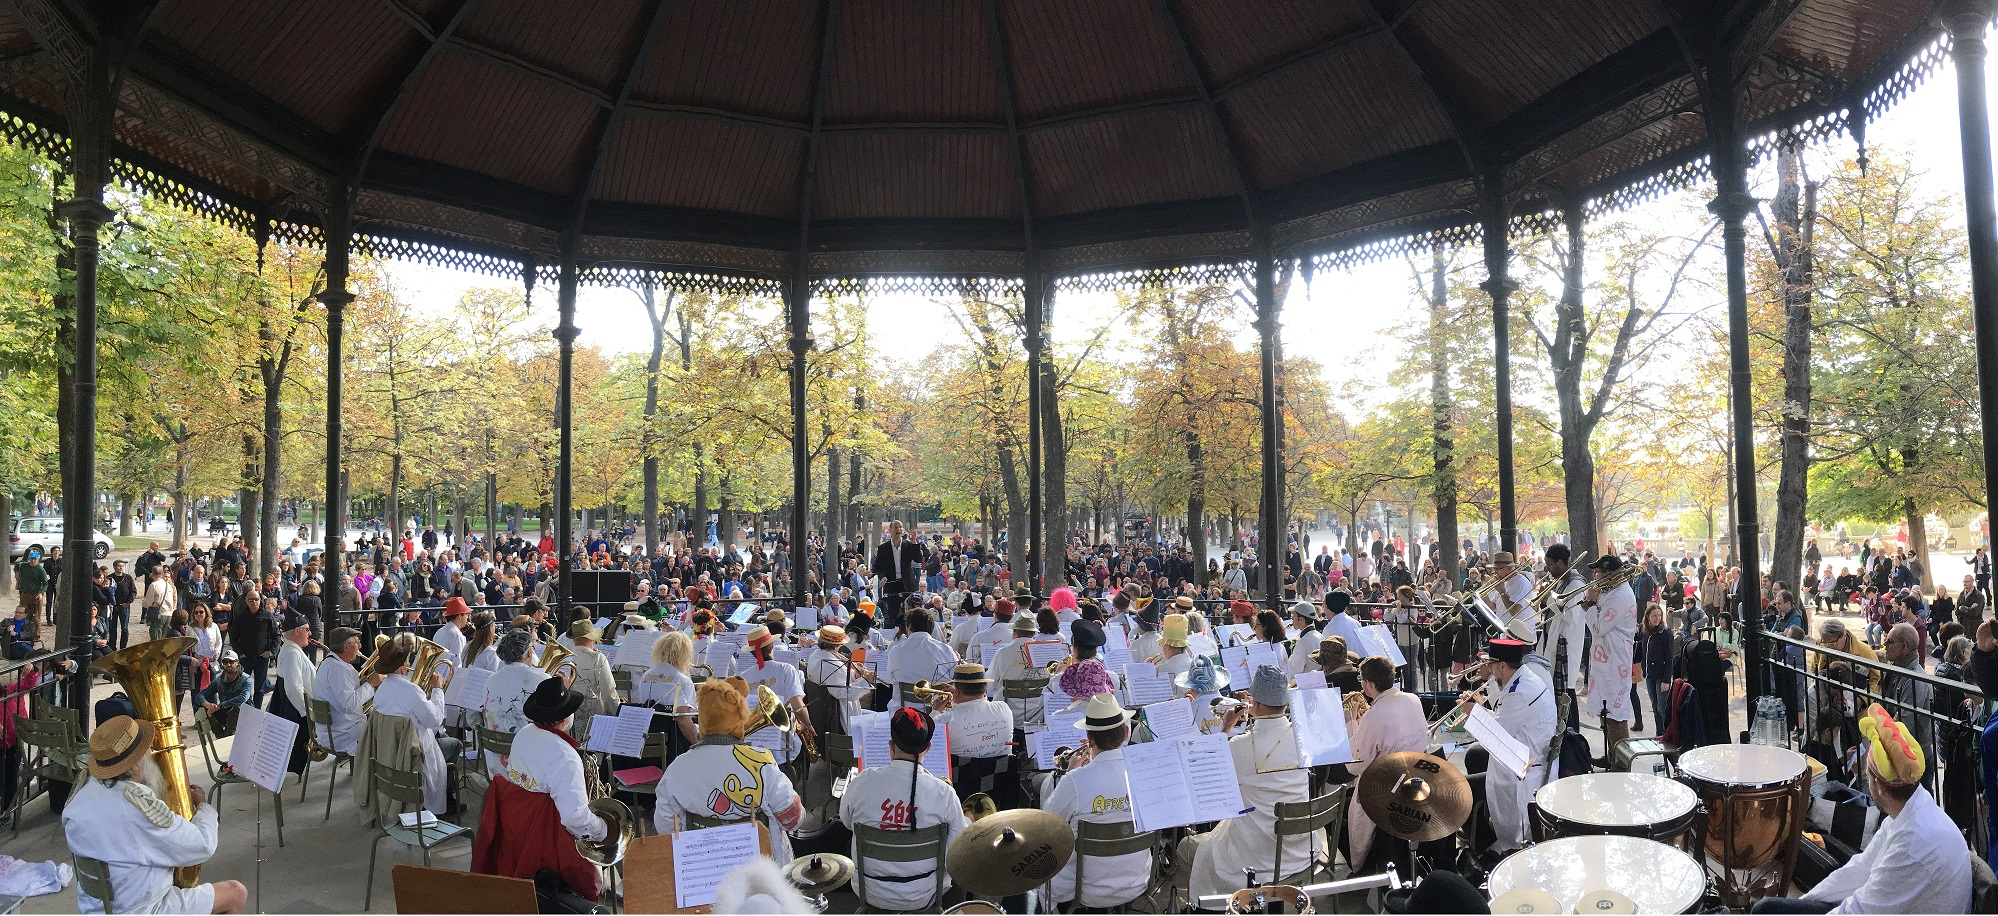 Concert au jardin du luxembourg for Au jardin wedding